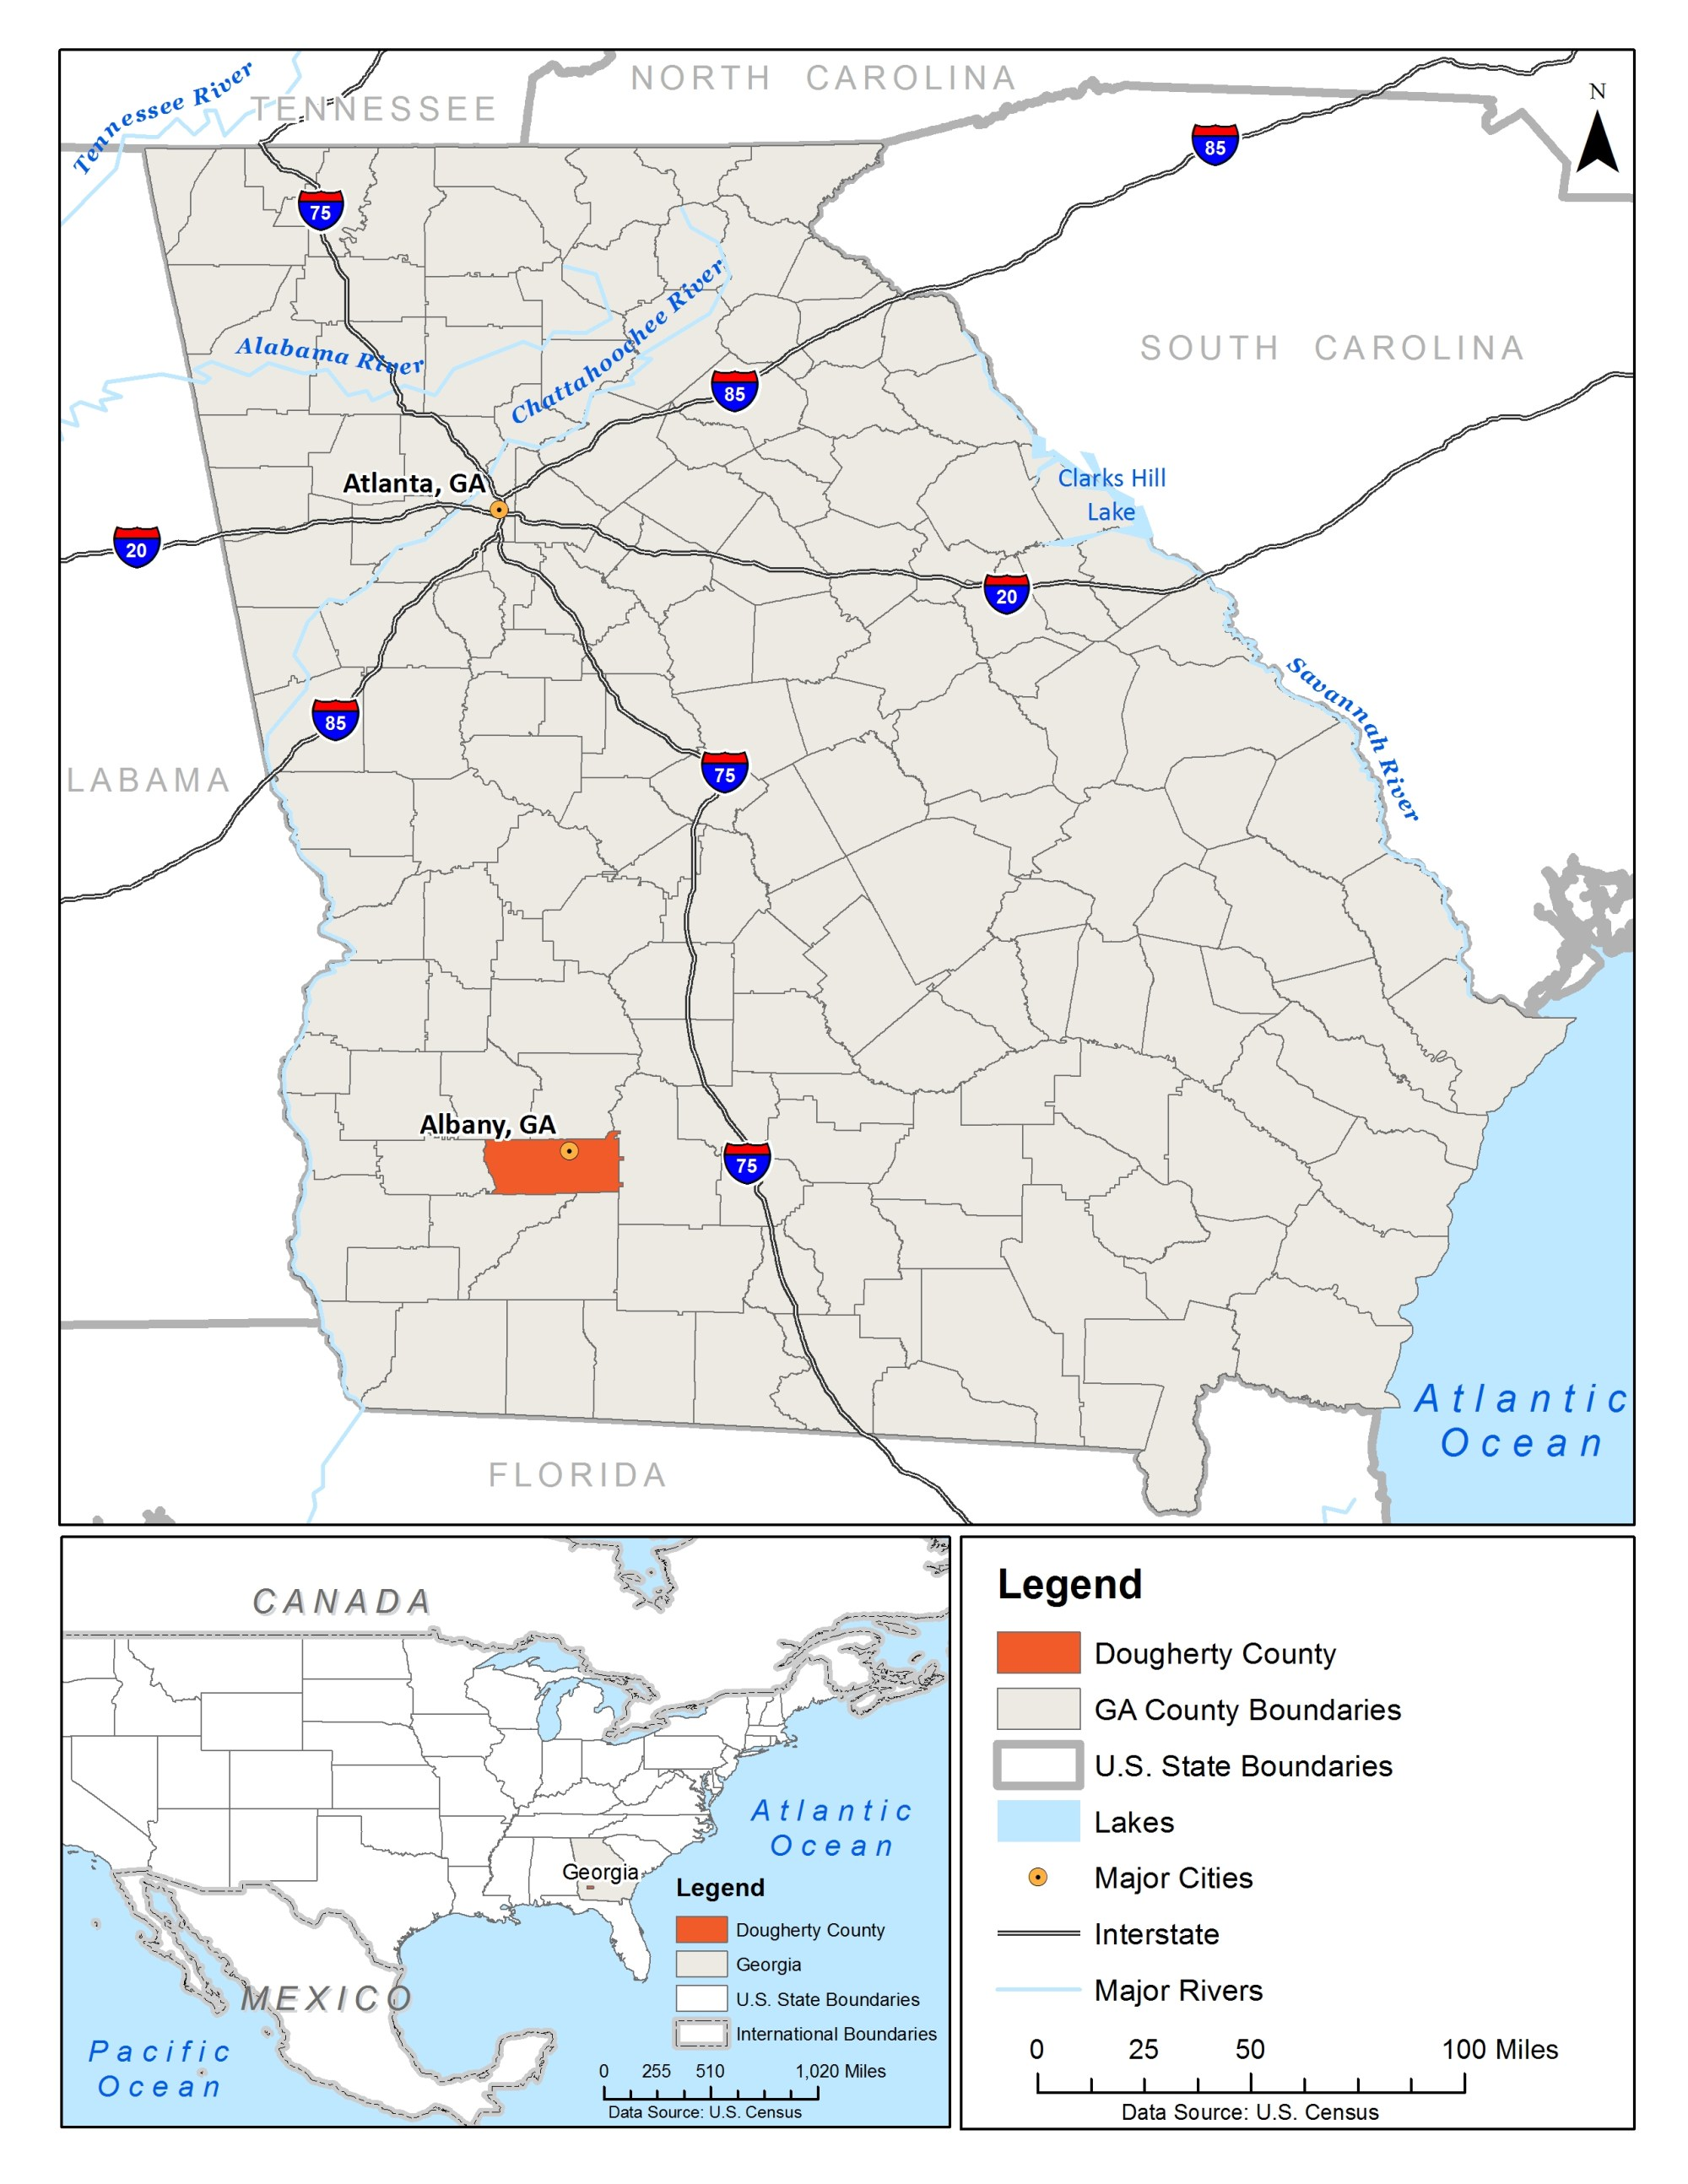 hight resolution of dougherty county is located in southwest georgia image source ub food systems planning and healthy communities lab